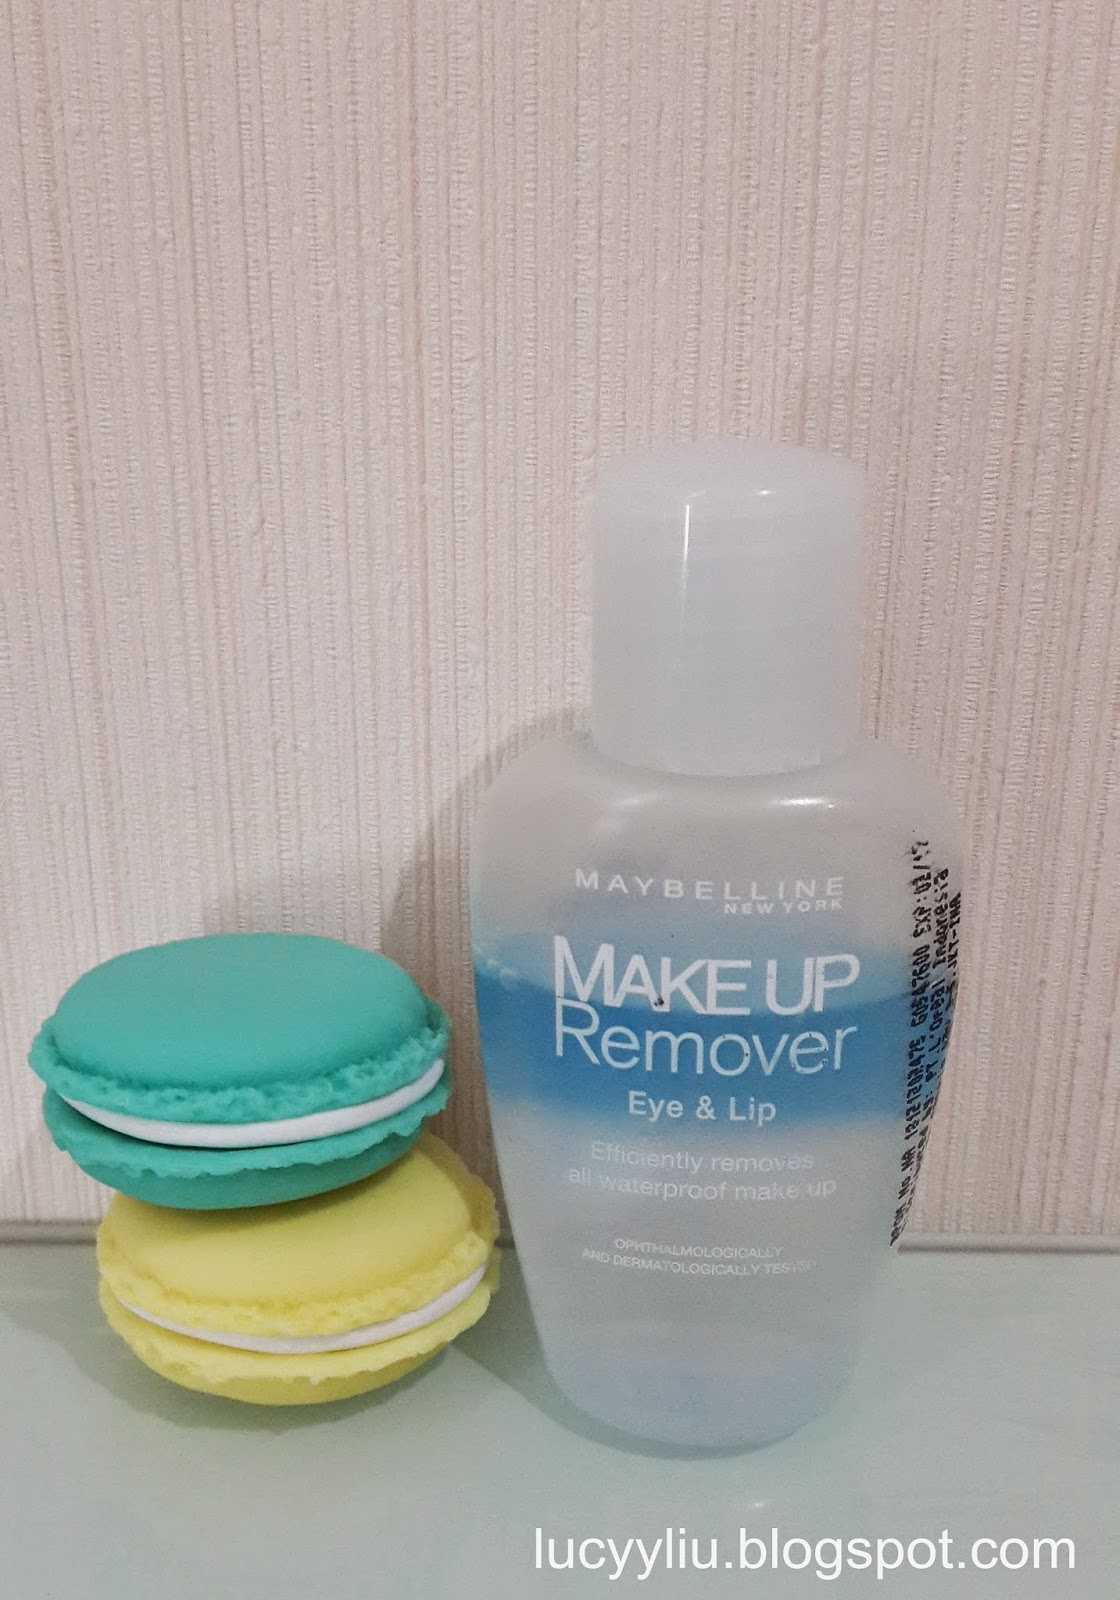 Maybelline Make Up Remover Eye & Lip review